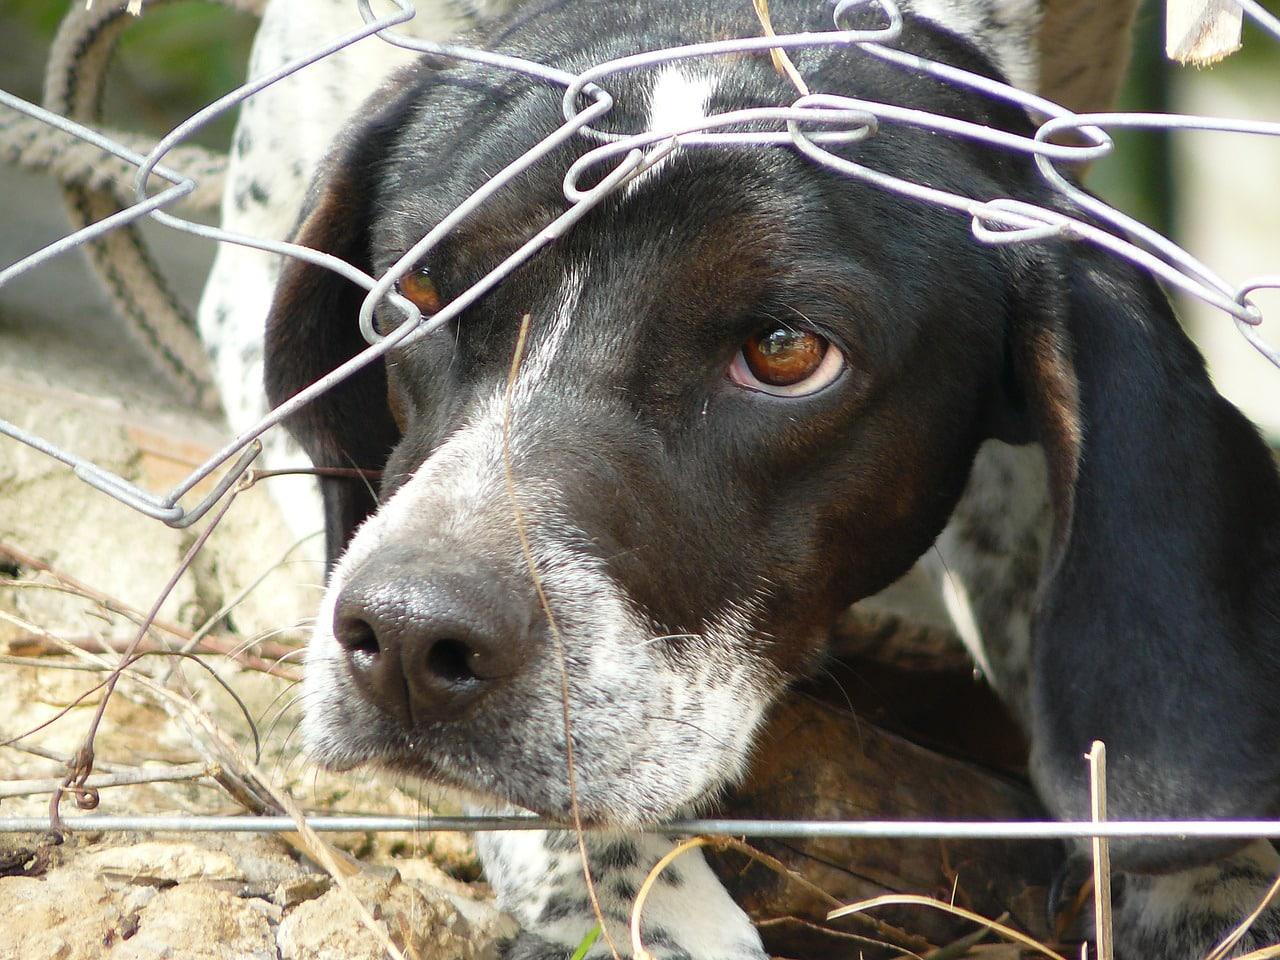 Hungarian couple arrested in England for torturing then killing their own dog